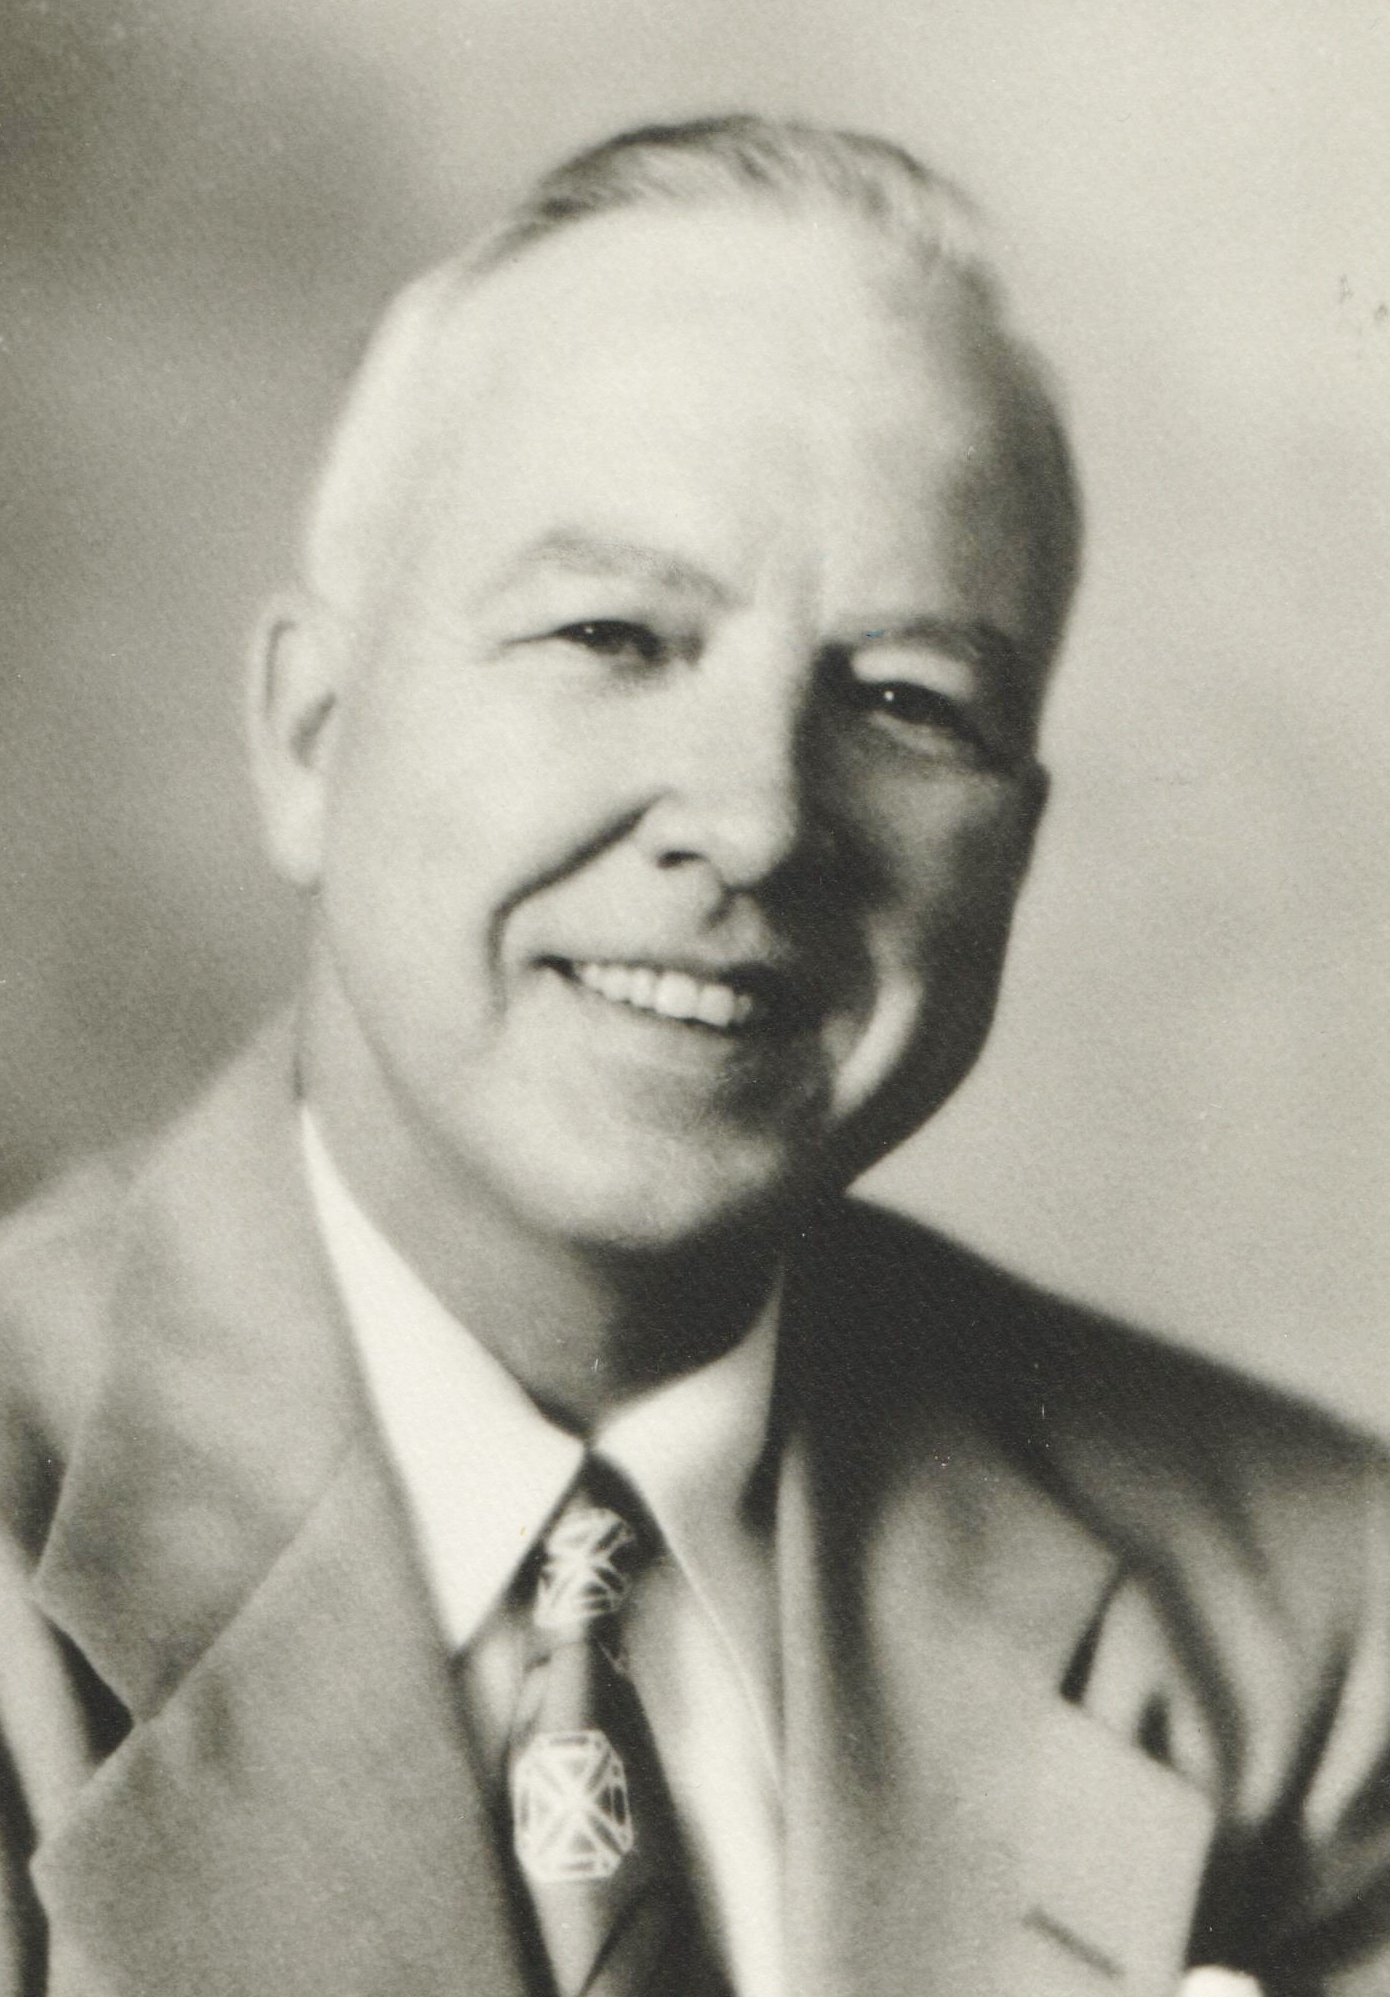 1950 William P. Uren